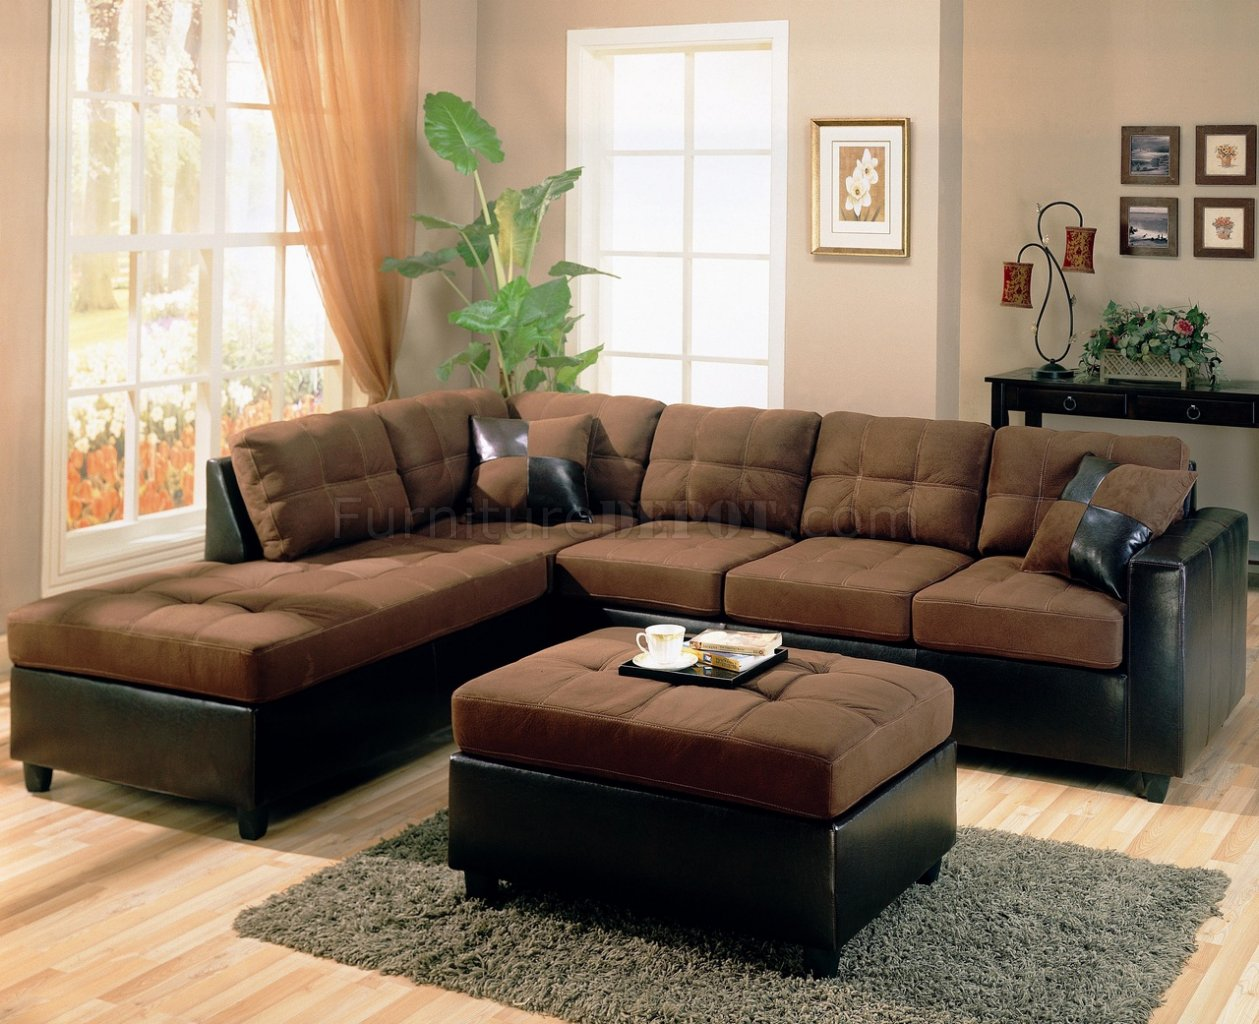 Two tone modern sectional sofa 500655 chocolate dark brown for Chocolate brown couch living room ideas